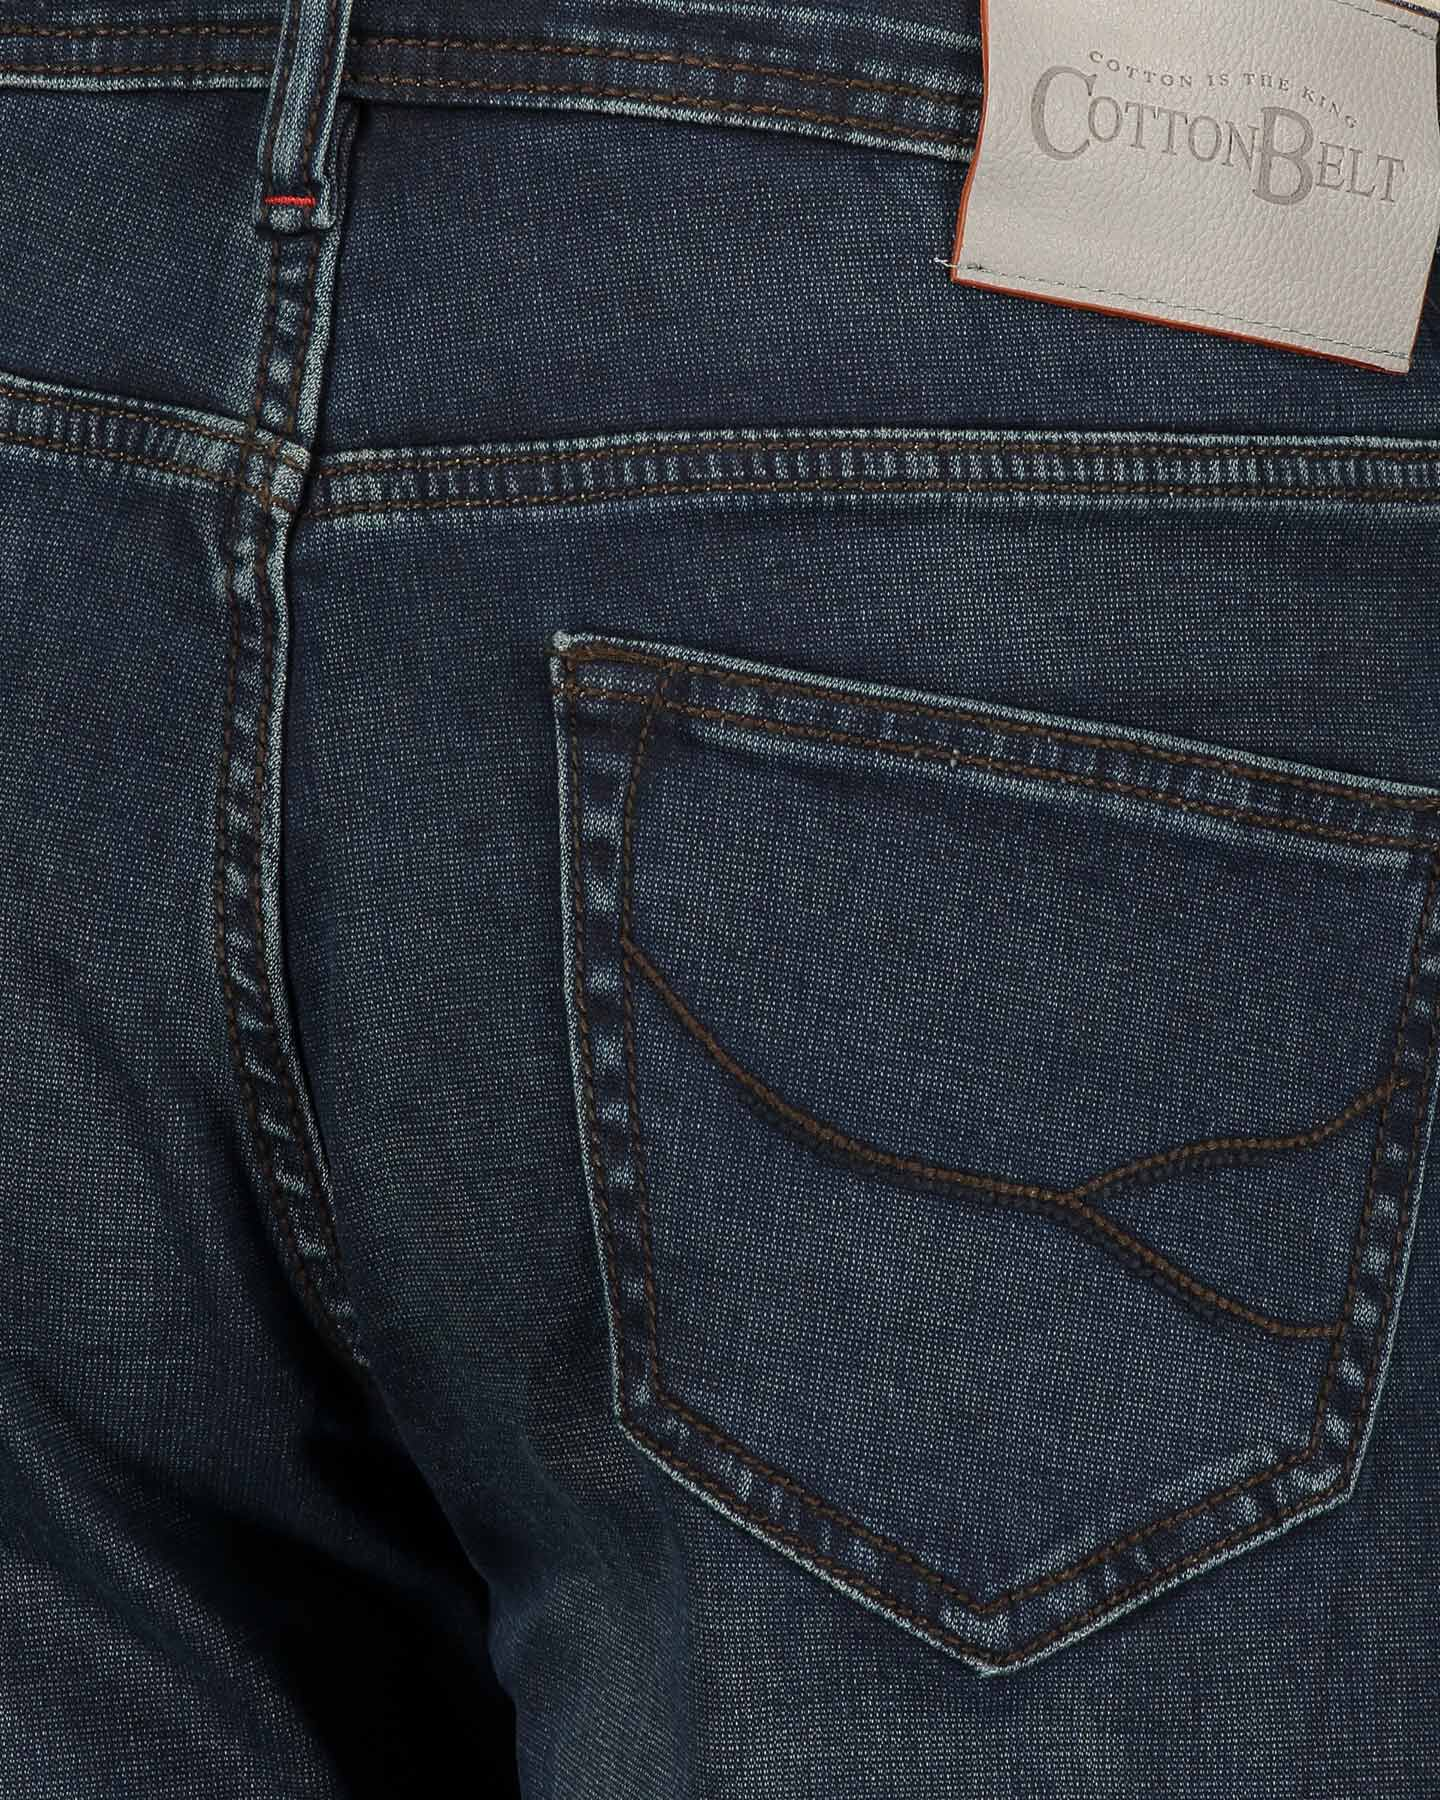 Jeans COTTON BELT GENOA REGULAR M S4070913 scatto 4